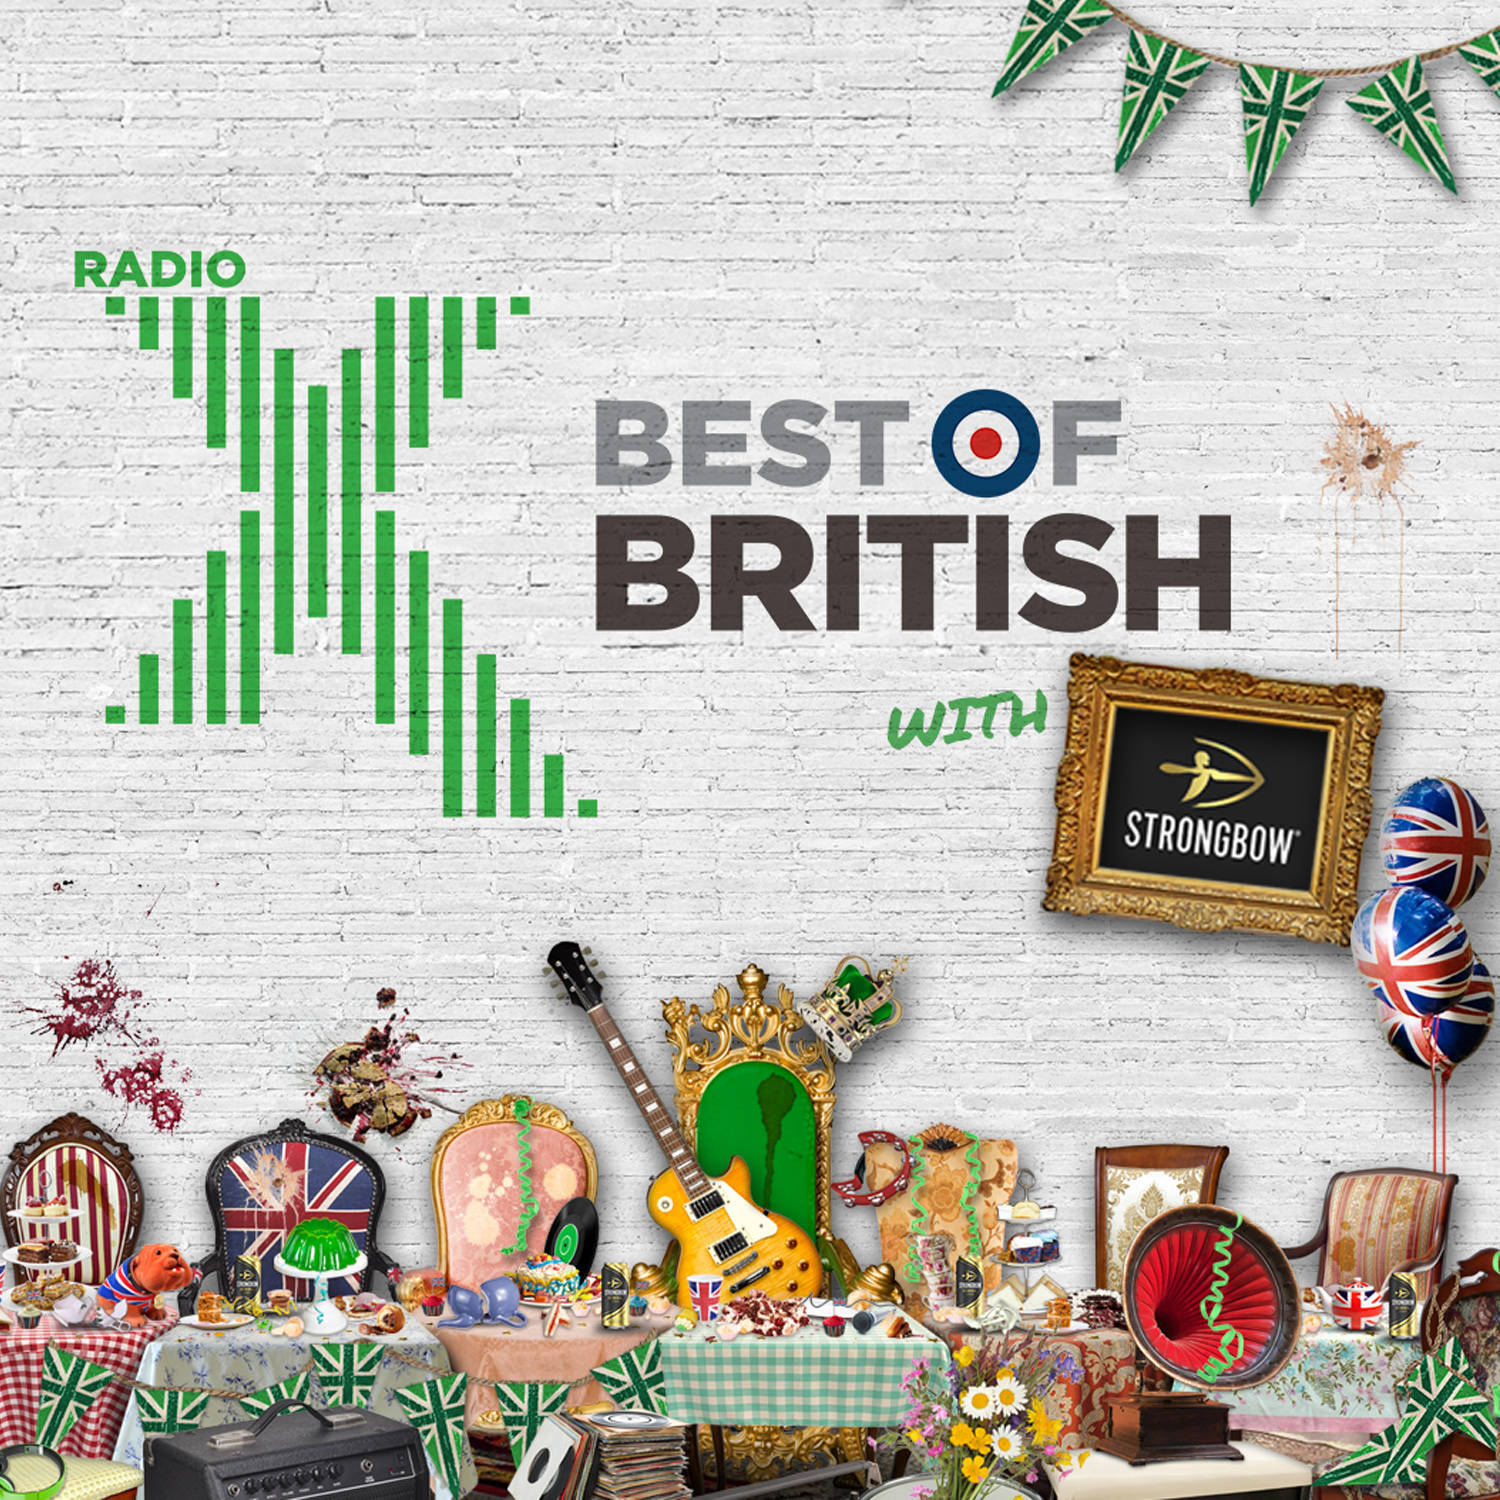 Radio X Best of British 2020 image